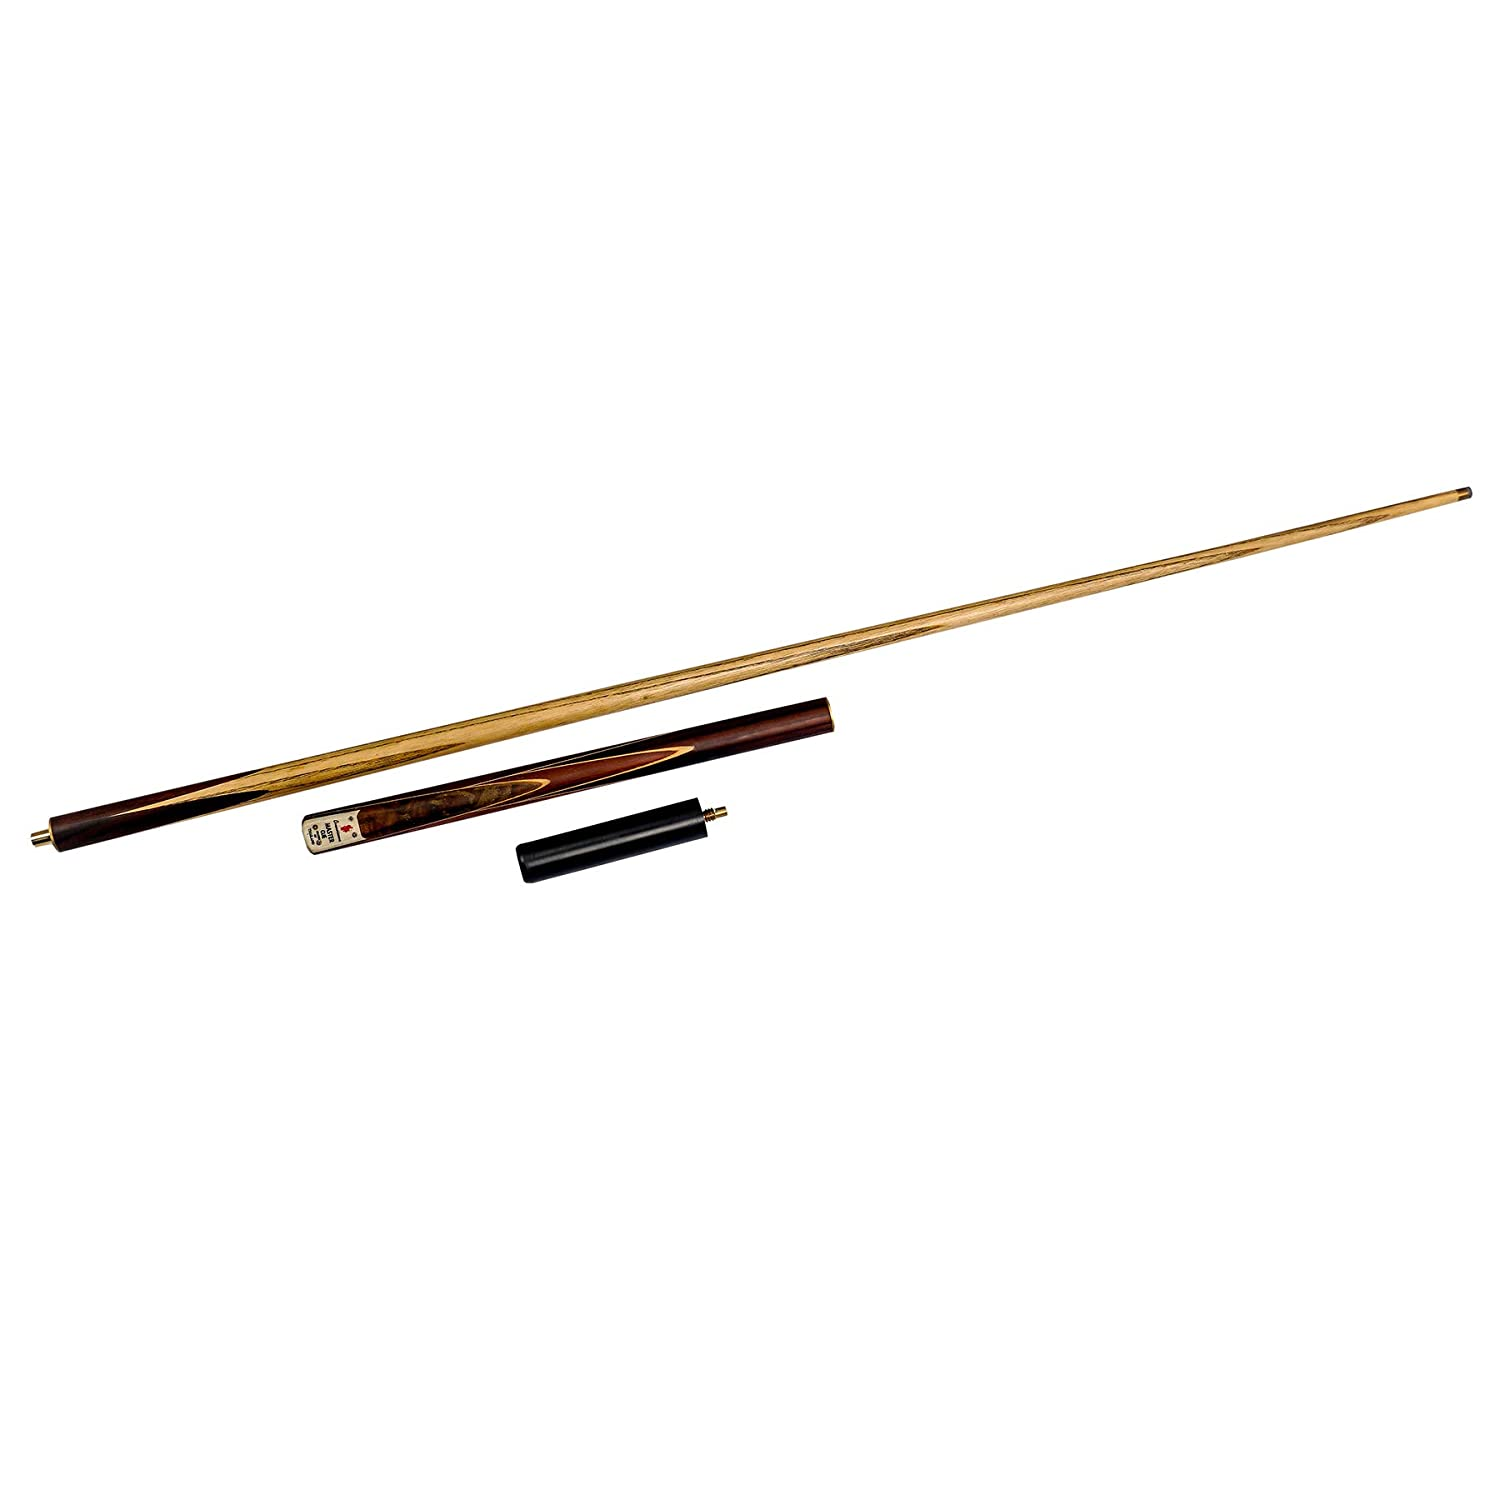 Snookers, Pool, Billiards Master Cue Stick With Extension